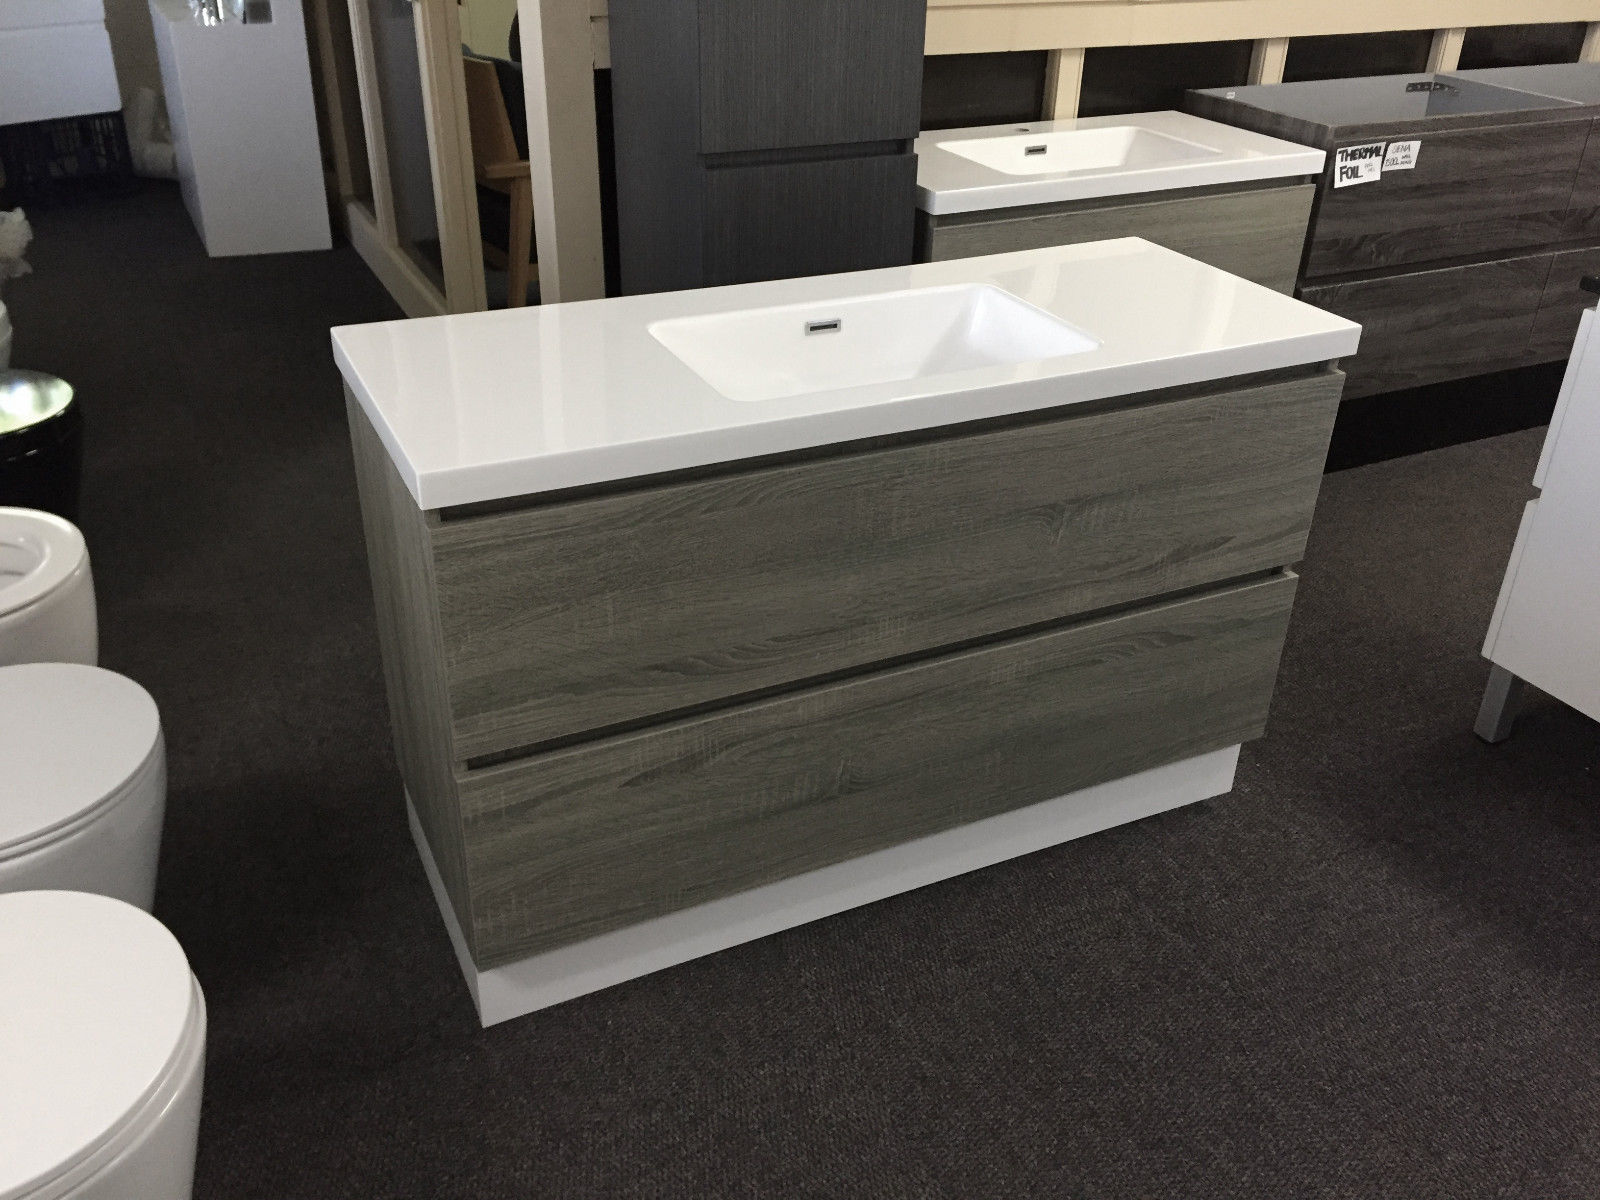 Bogetta 1200mm Light Grey Oak Timber Wood Grain Wall Hung Freestanding Vanity Homegear Australia